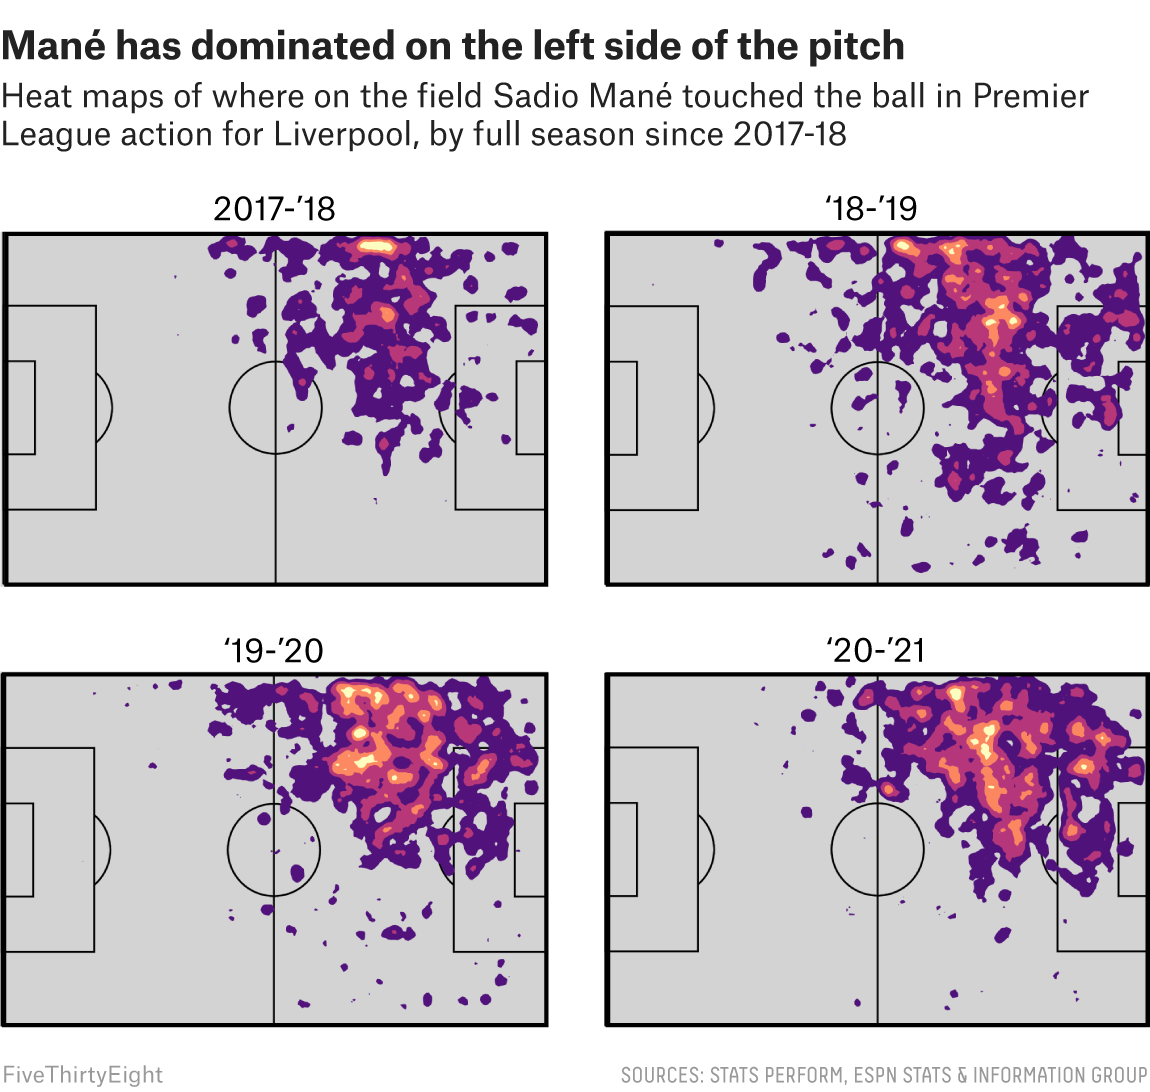 Four heat maps showing where on the field Sadio Mané touched the ball in Premier League action for Liverpool, by full season since 2017-18. Mané has dominated on the left side of the pitch throughout all four seasons.